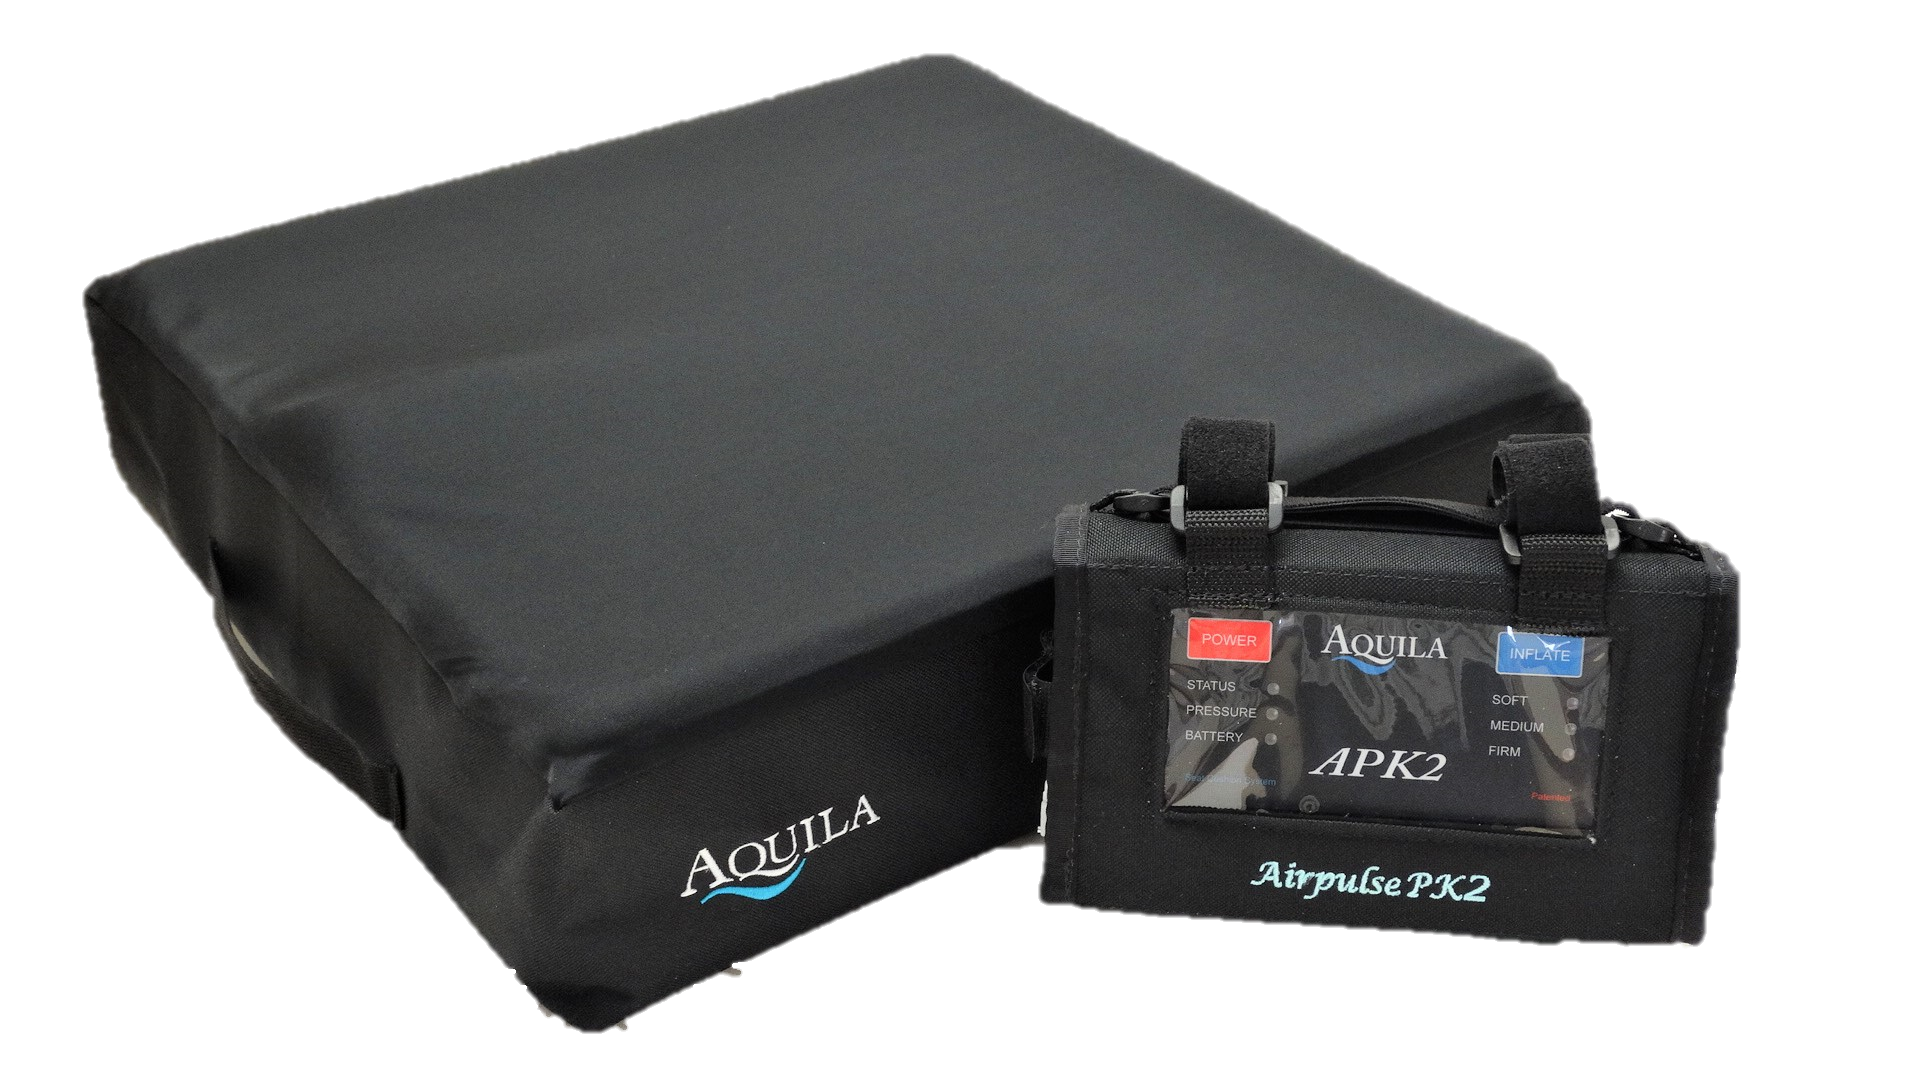 Heal and prevent pressure sores with the Aquila Airpulse PK2 wheelchair cushion.